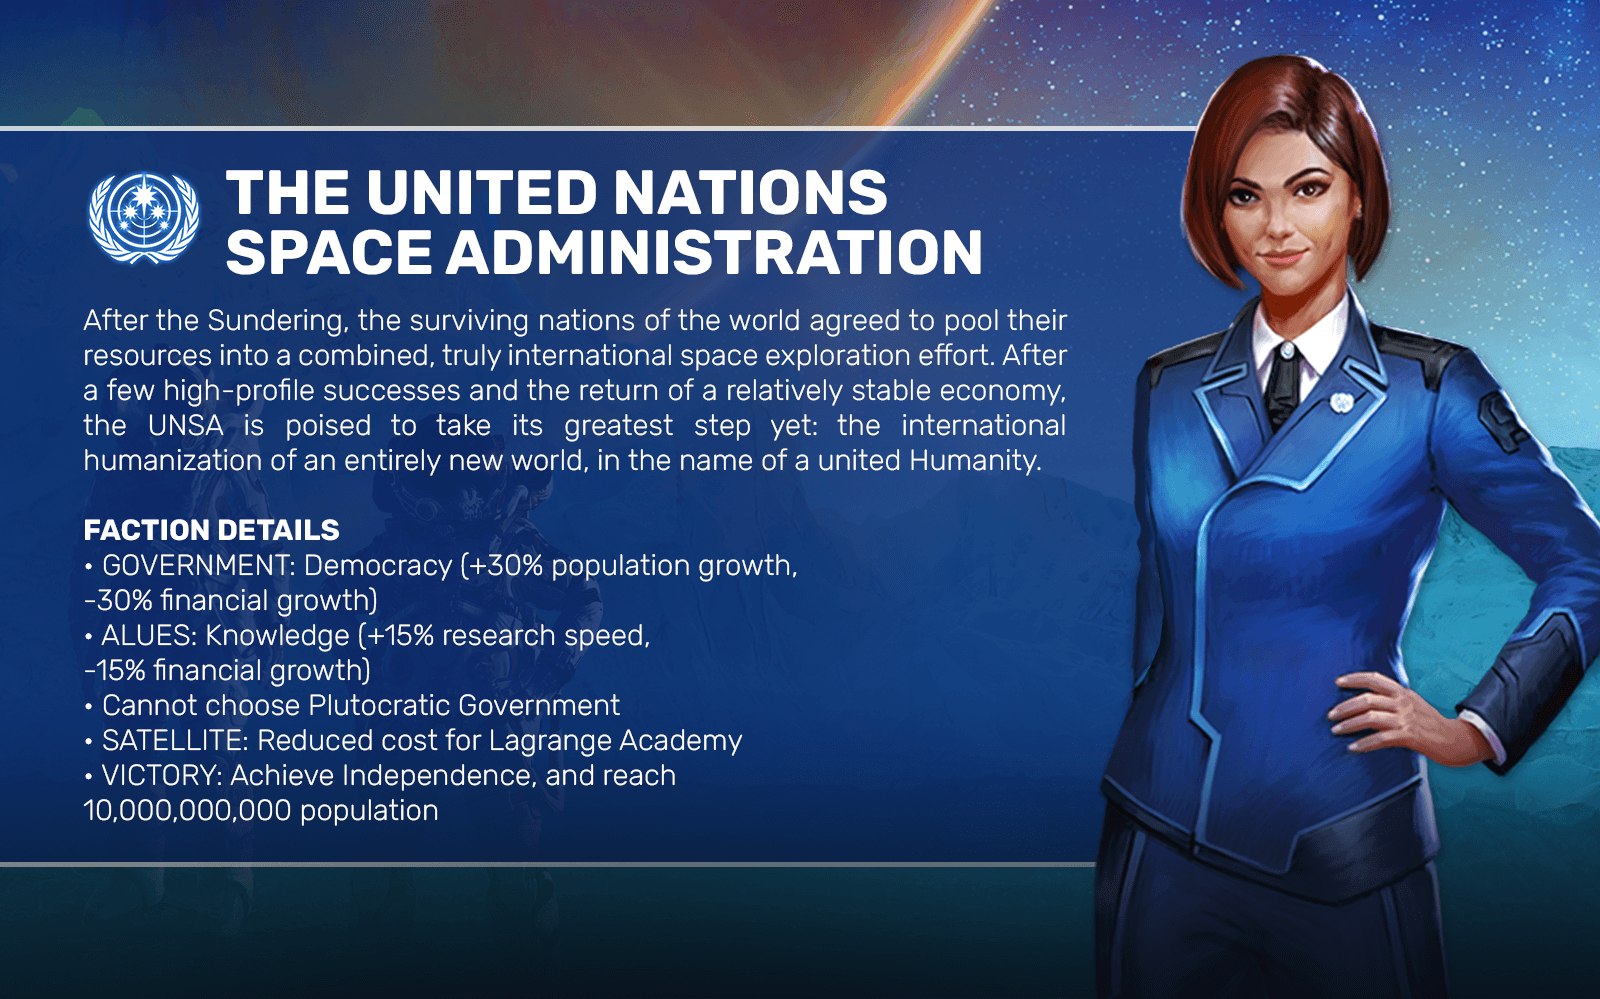 THE UNITED NATIONS SPACE ADMINISTRATION